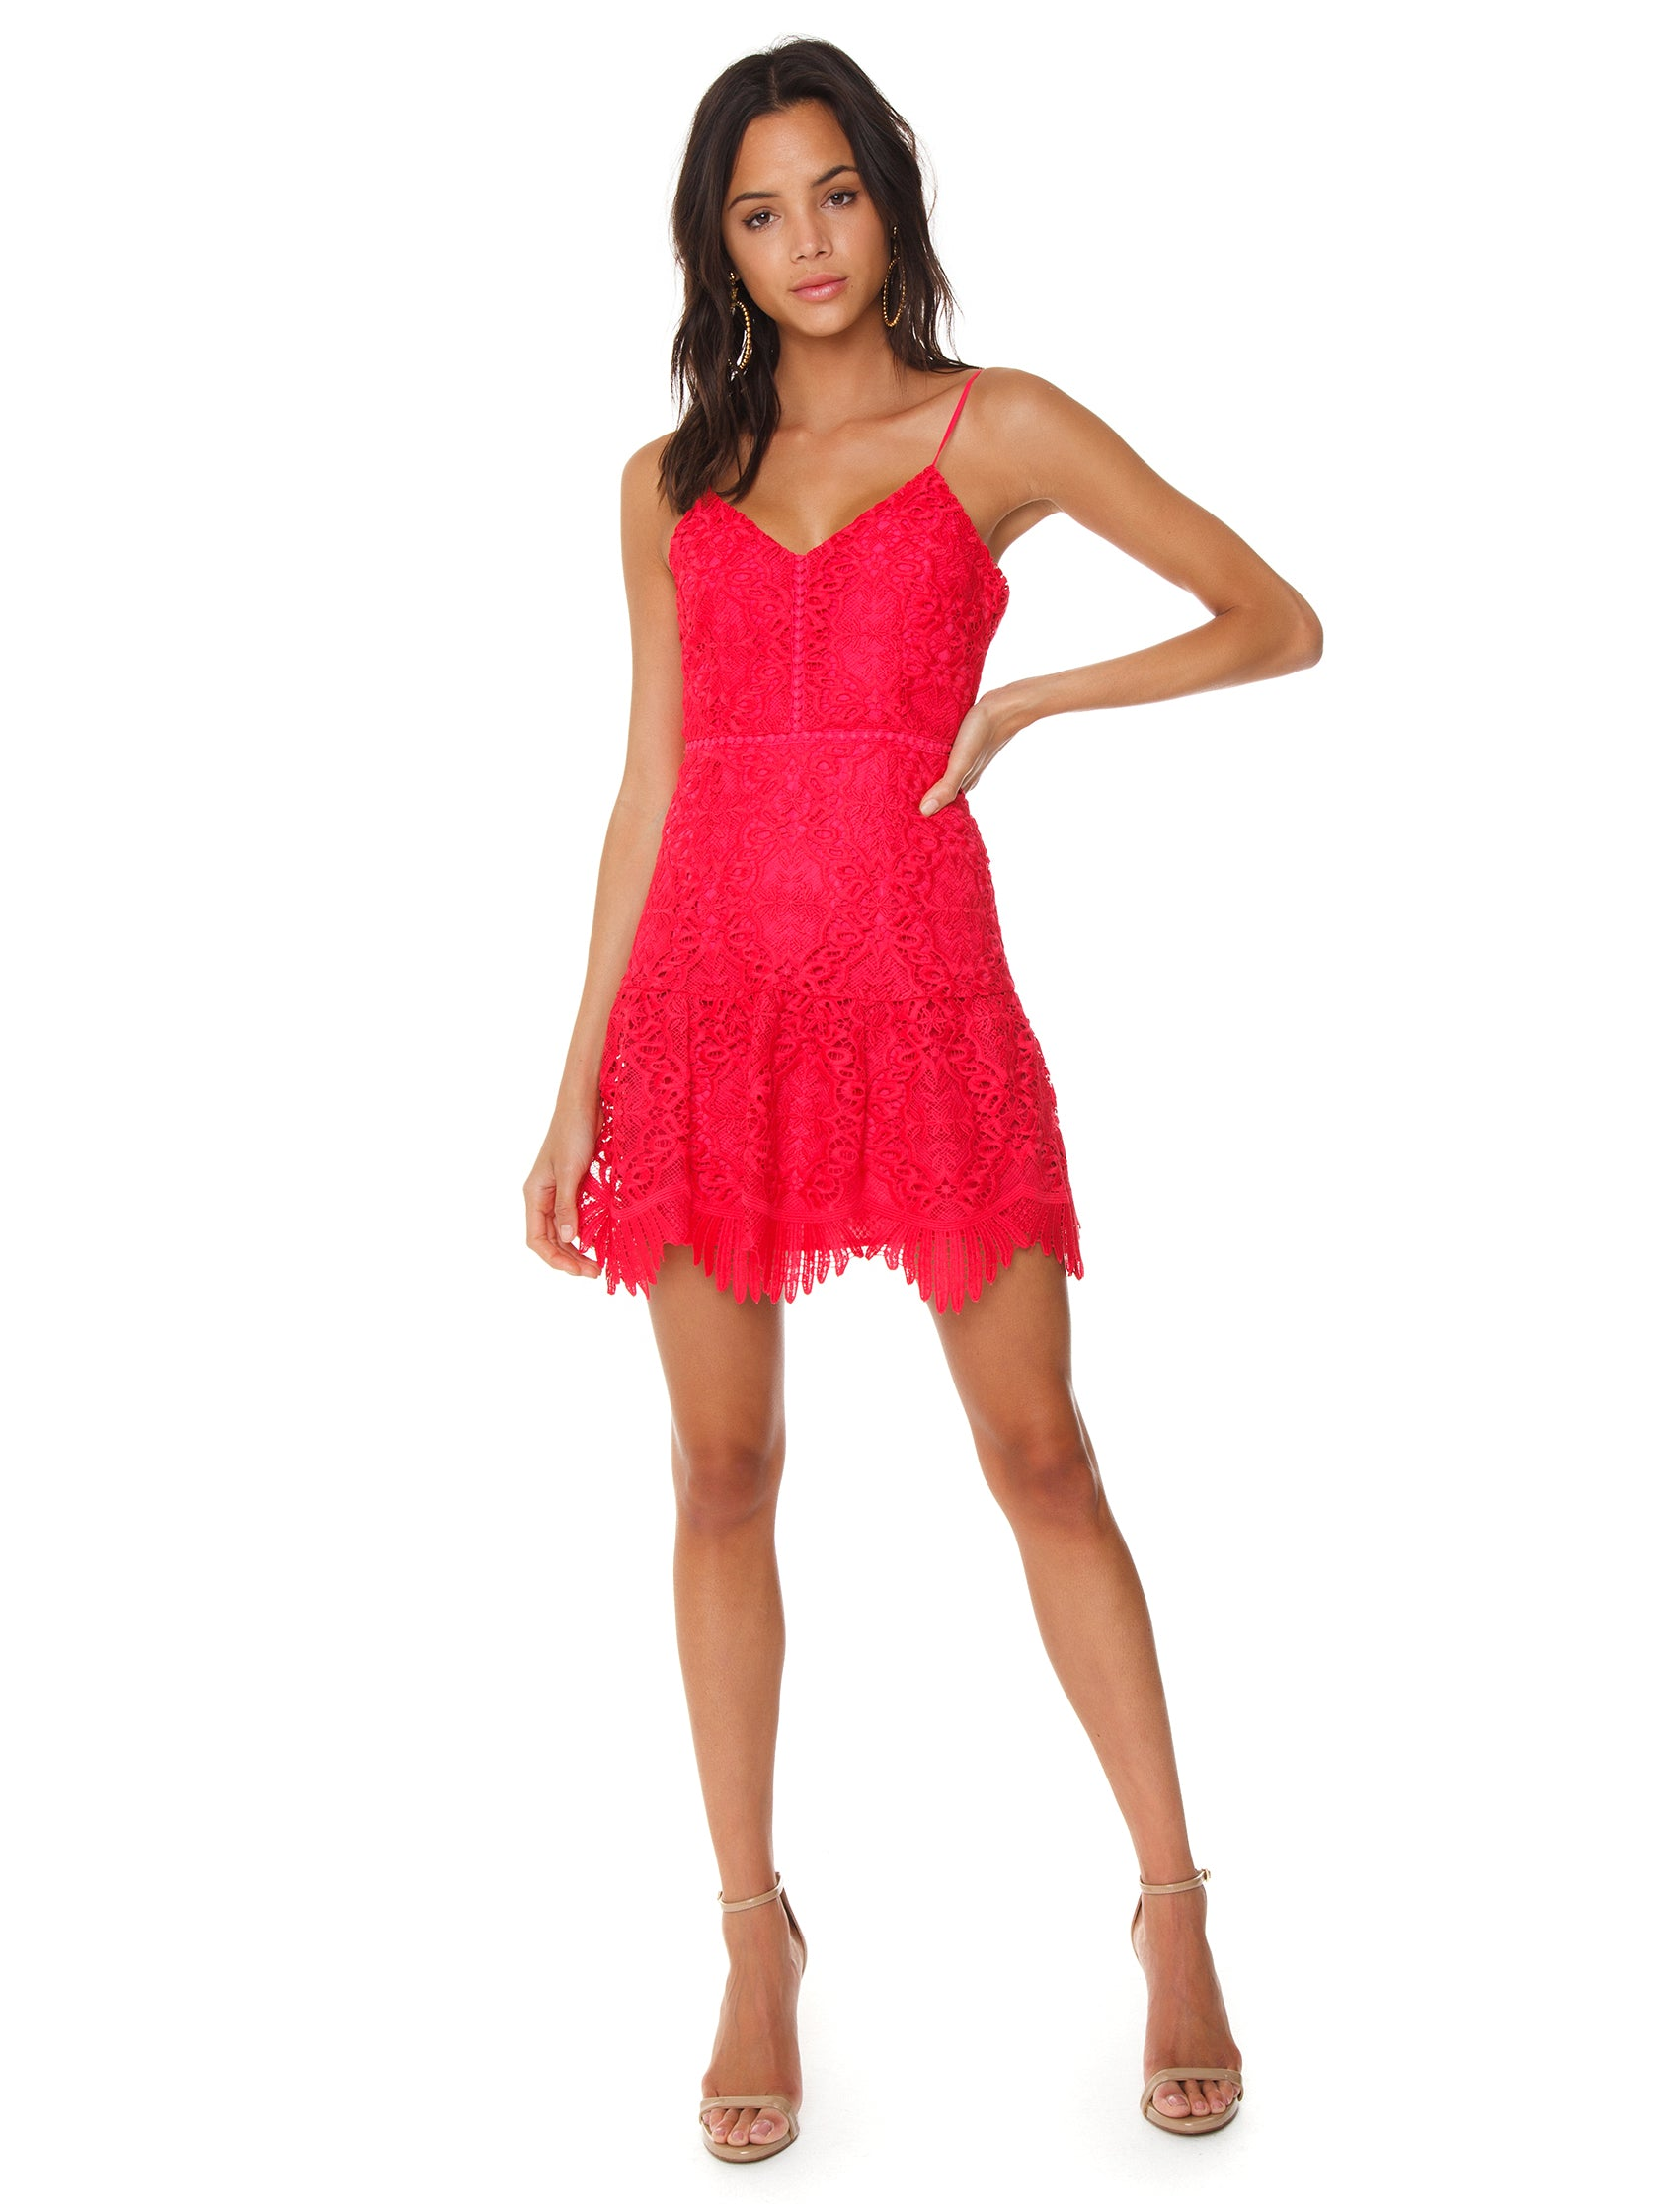 Girl outfit in a dress rental from BB Dakota called Party Has Arrived Dress